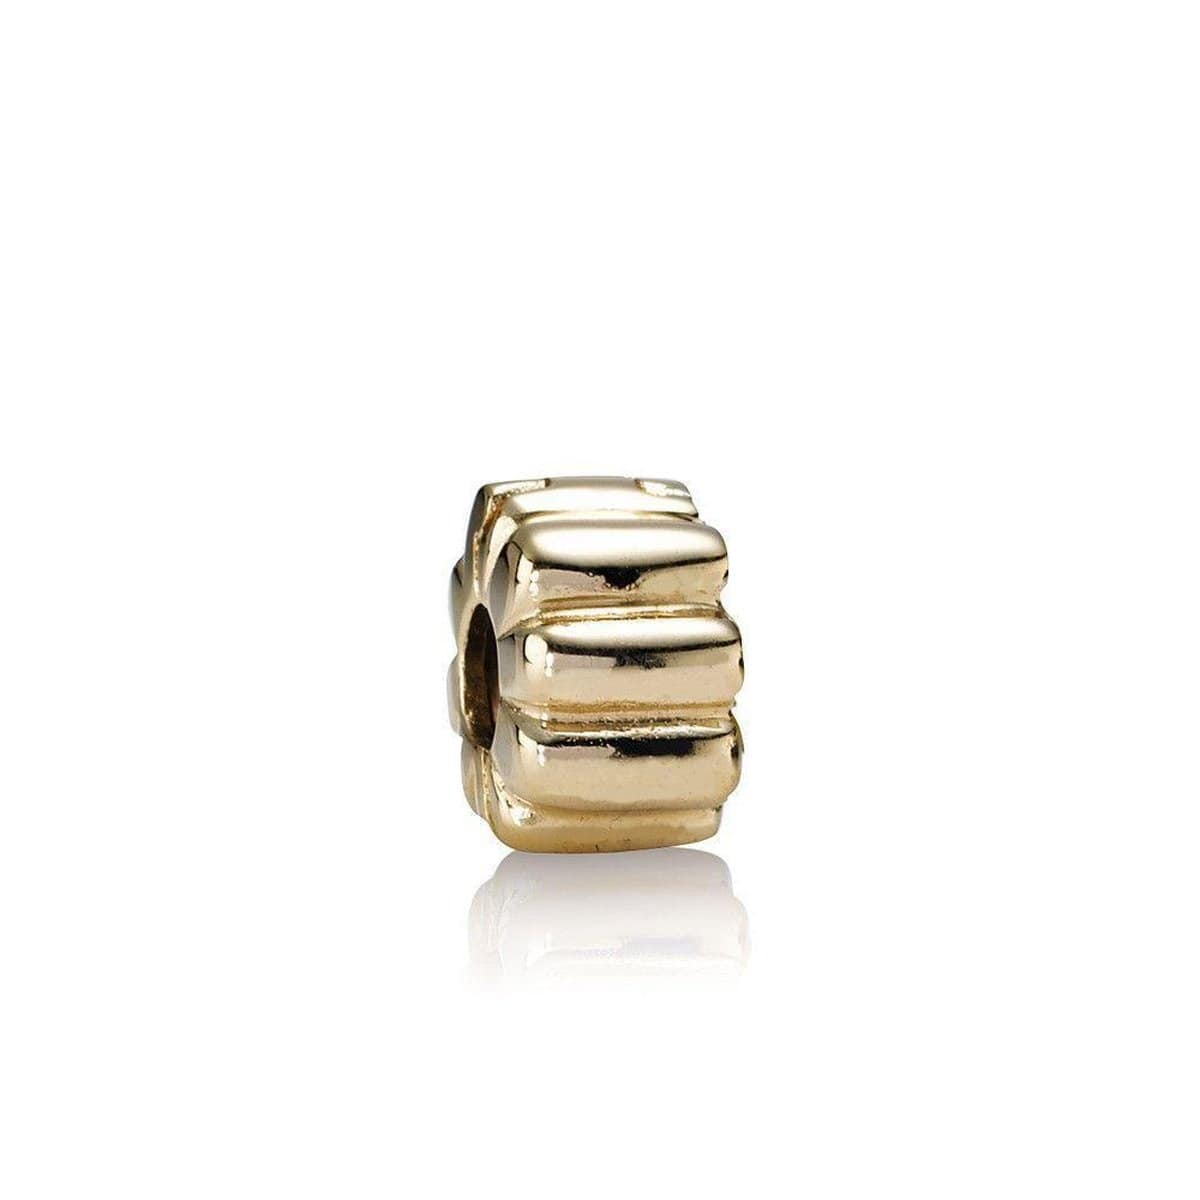 Ribbed 14K Gold Clip Charm - 750118